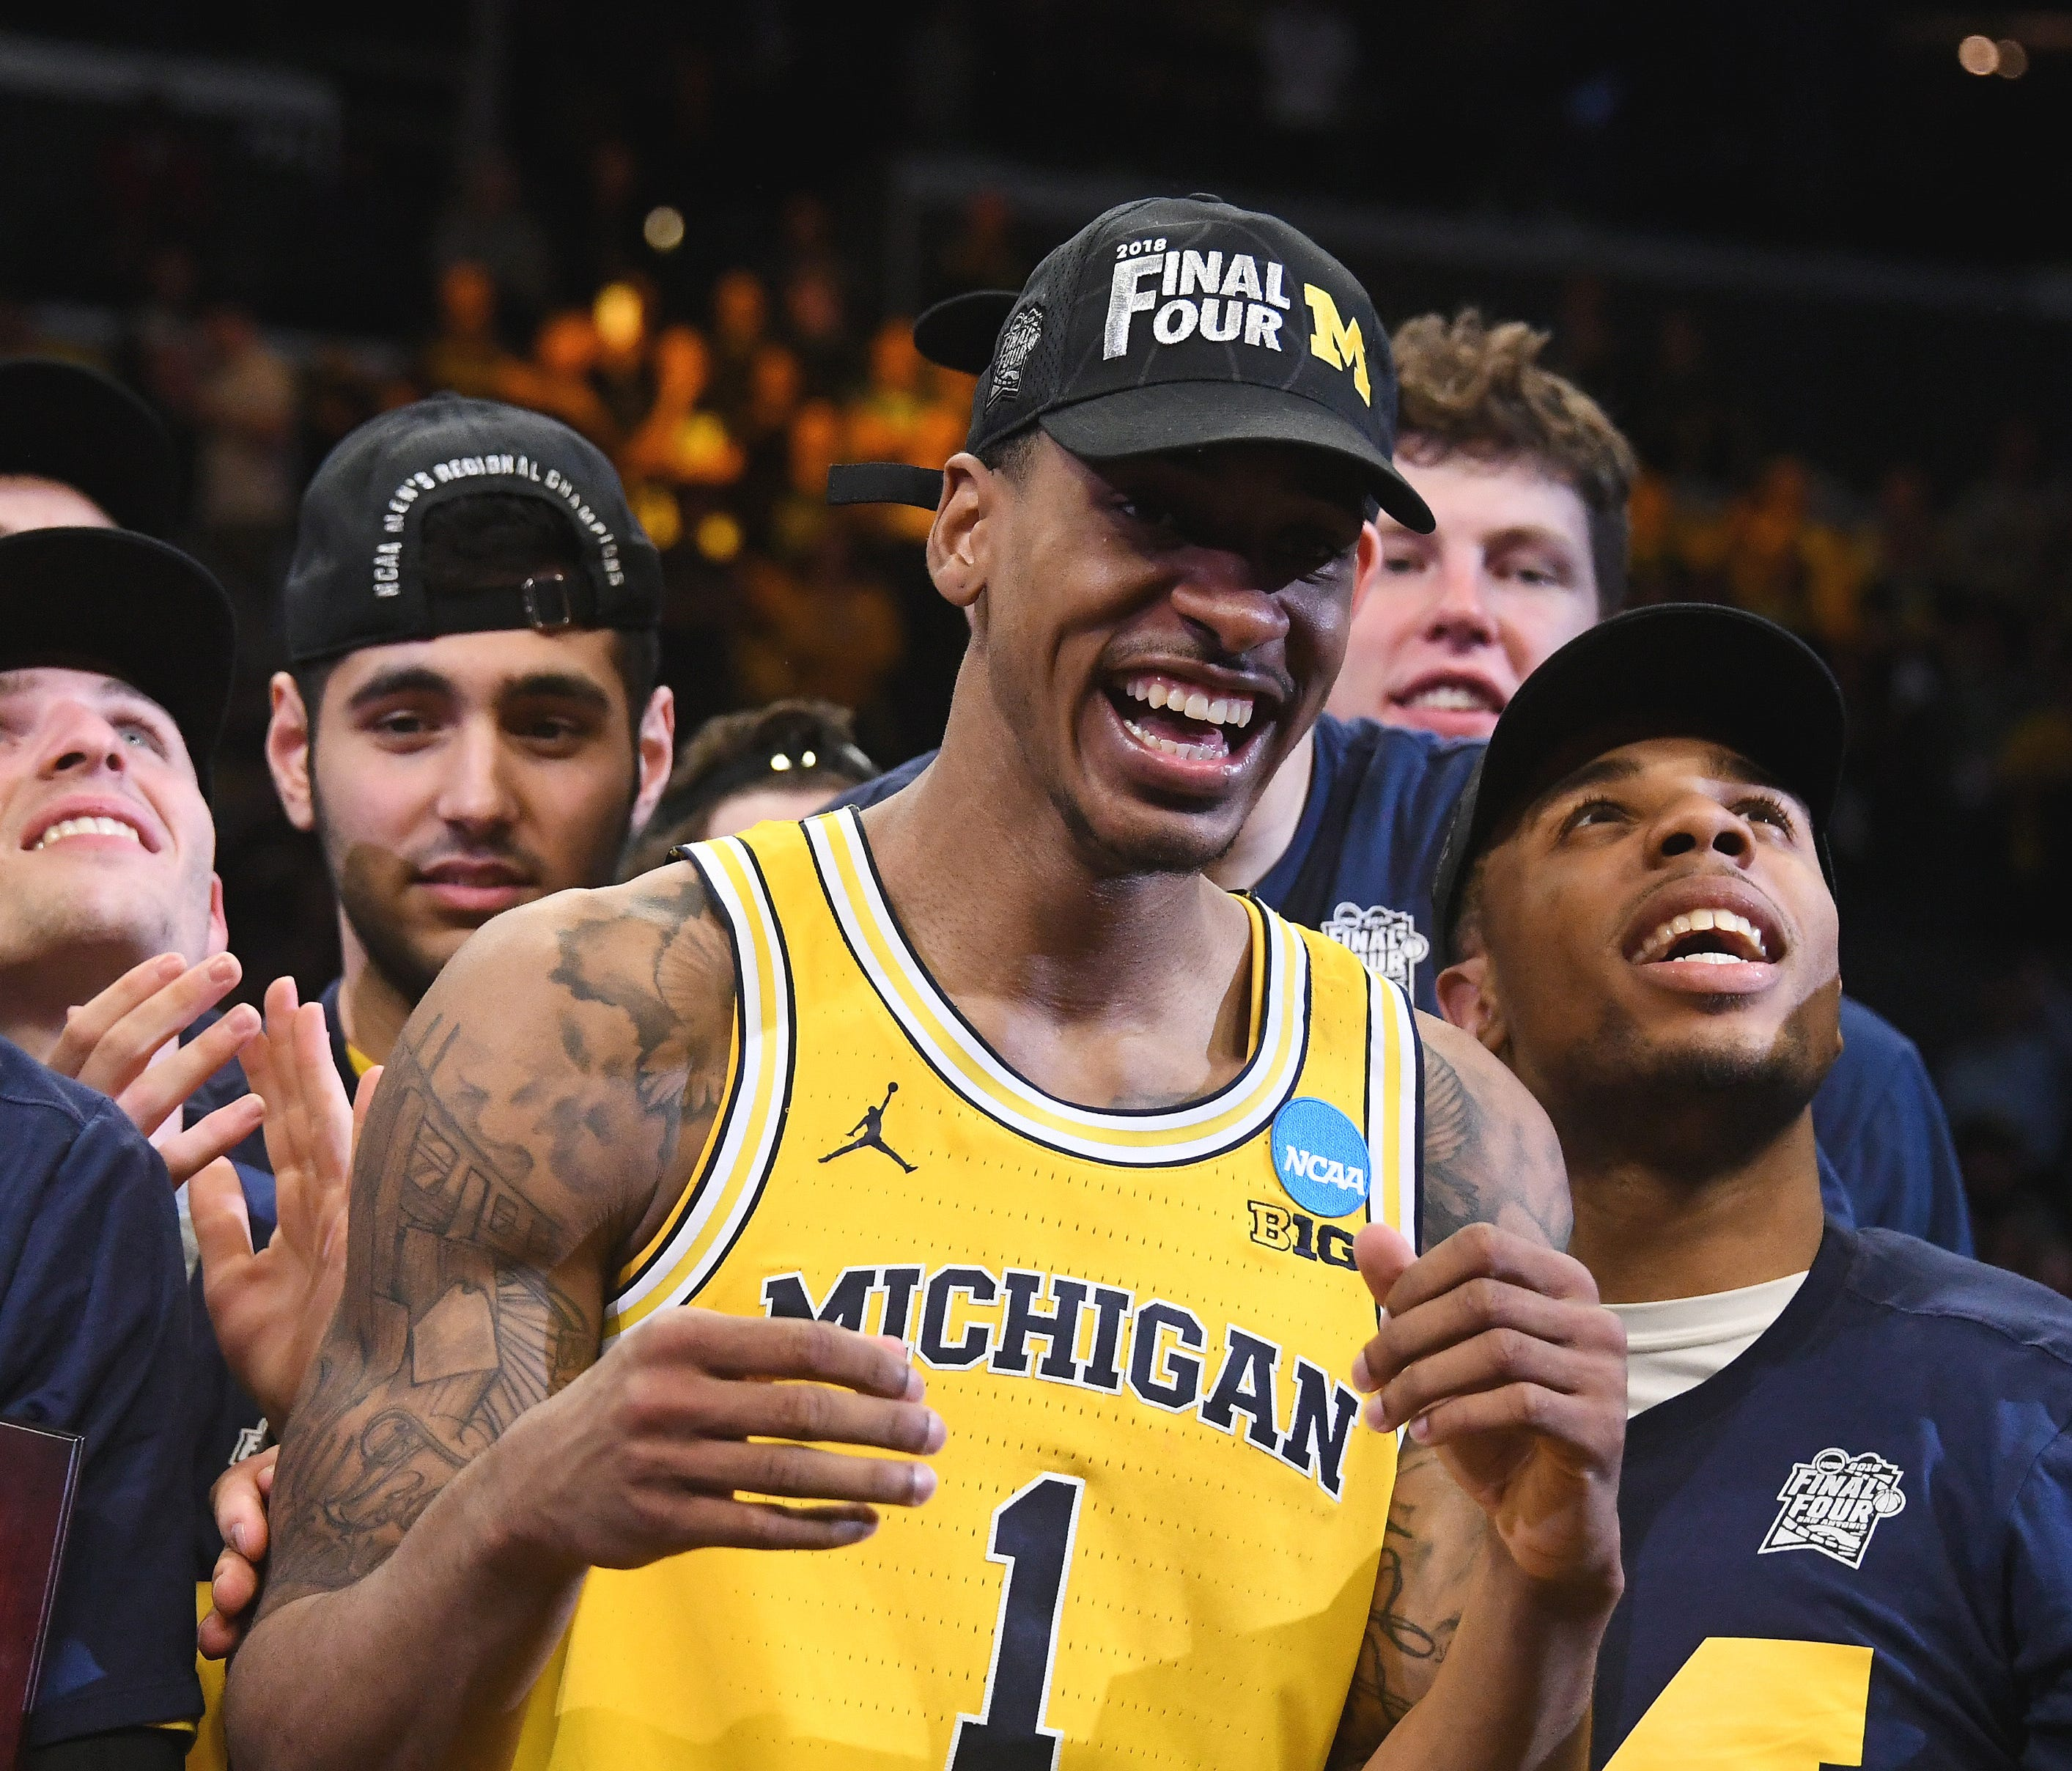 Michigan Wolverines guard Charles Matthews celebrates with teammates.